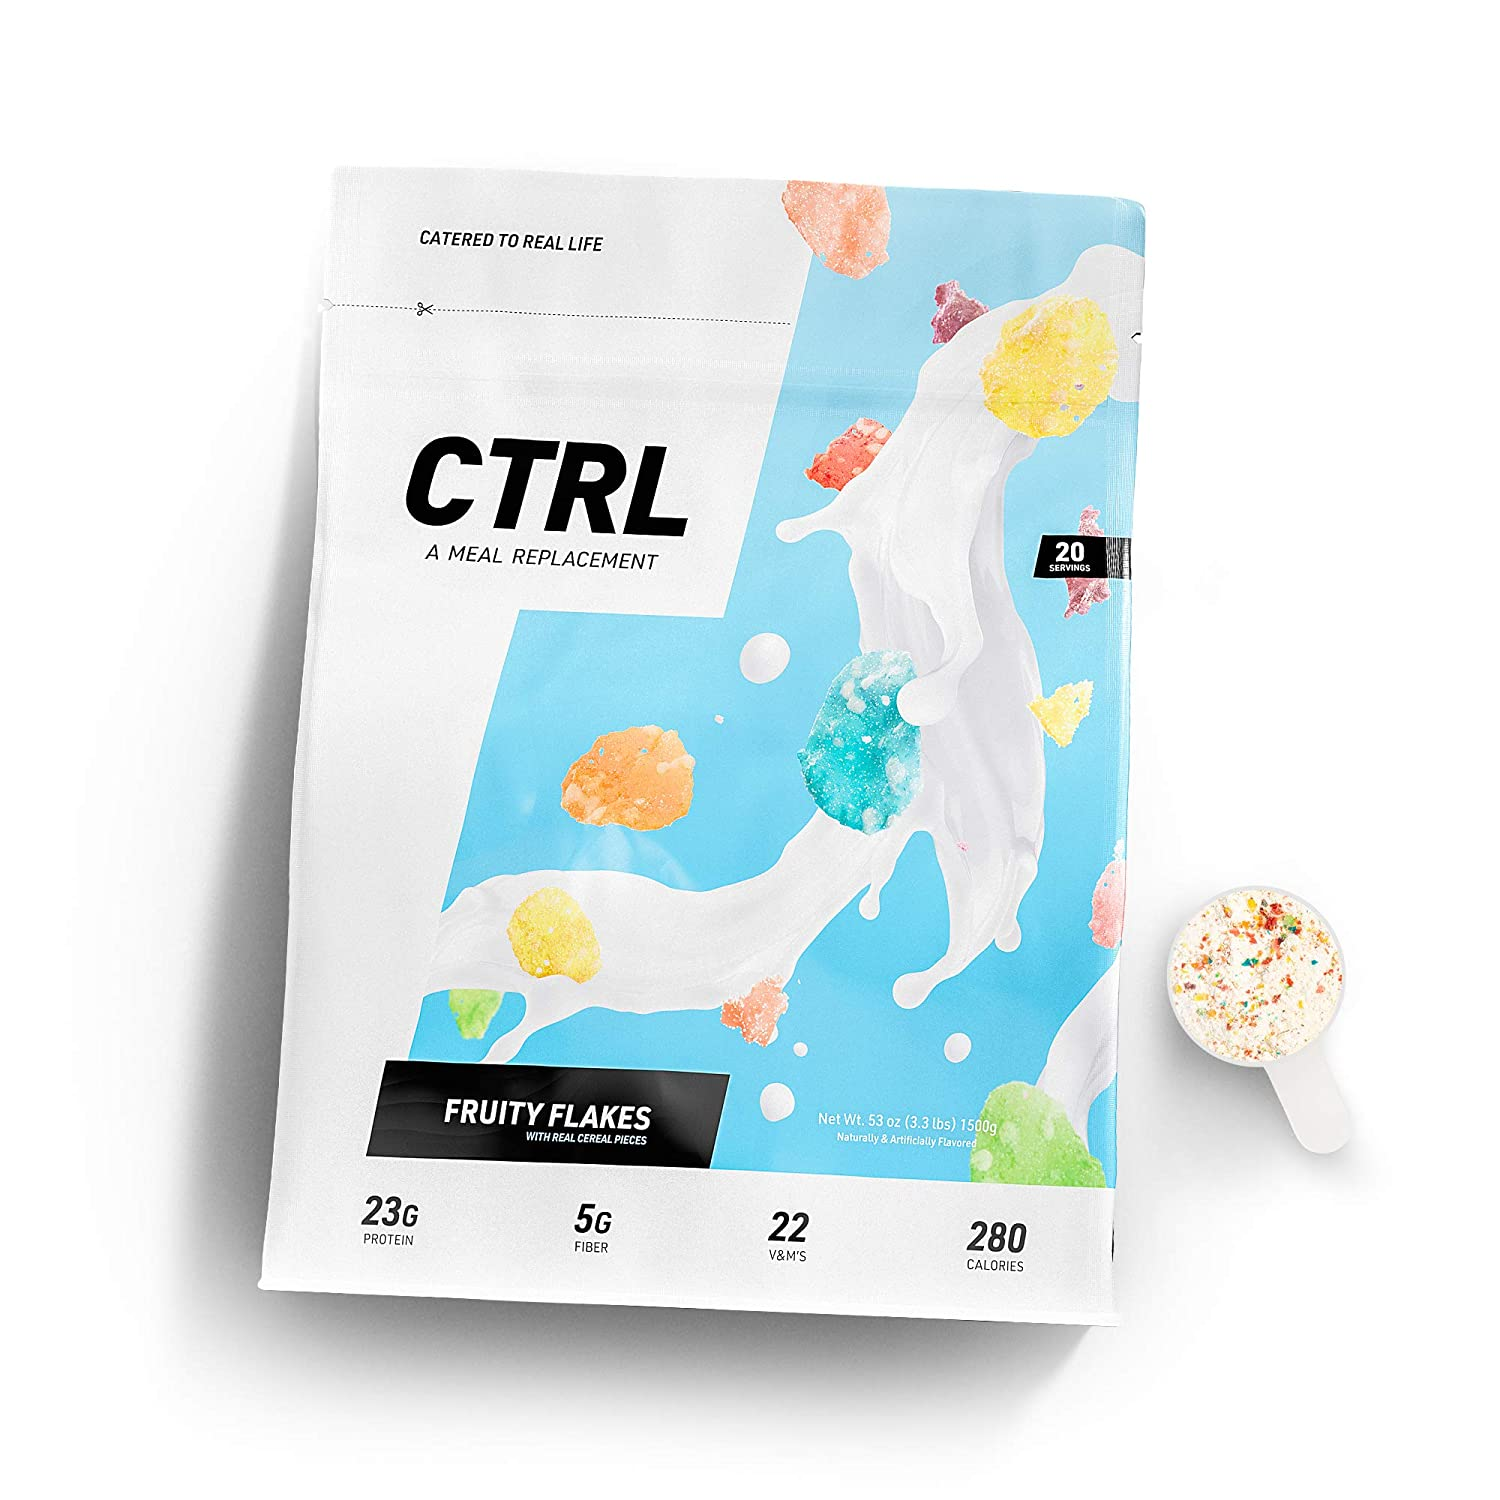 CTRL Meal Replacement Shake with Real Cereal Pieces - Fruity Flakes - 40 Scoops Packed with Essential Nutrients, Including 23g of Protein, 5 Grams of Fiber, 22 Vitamins and Minerals